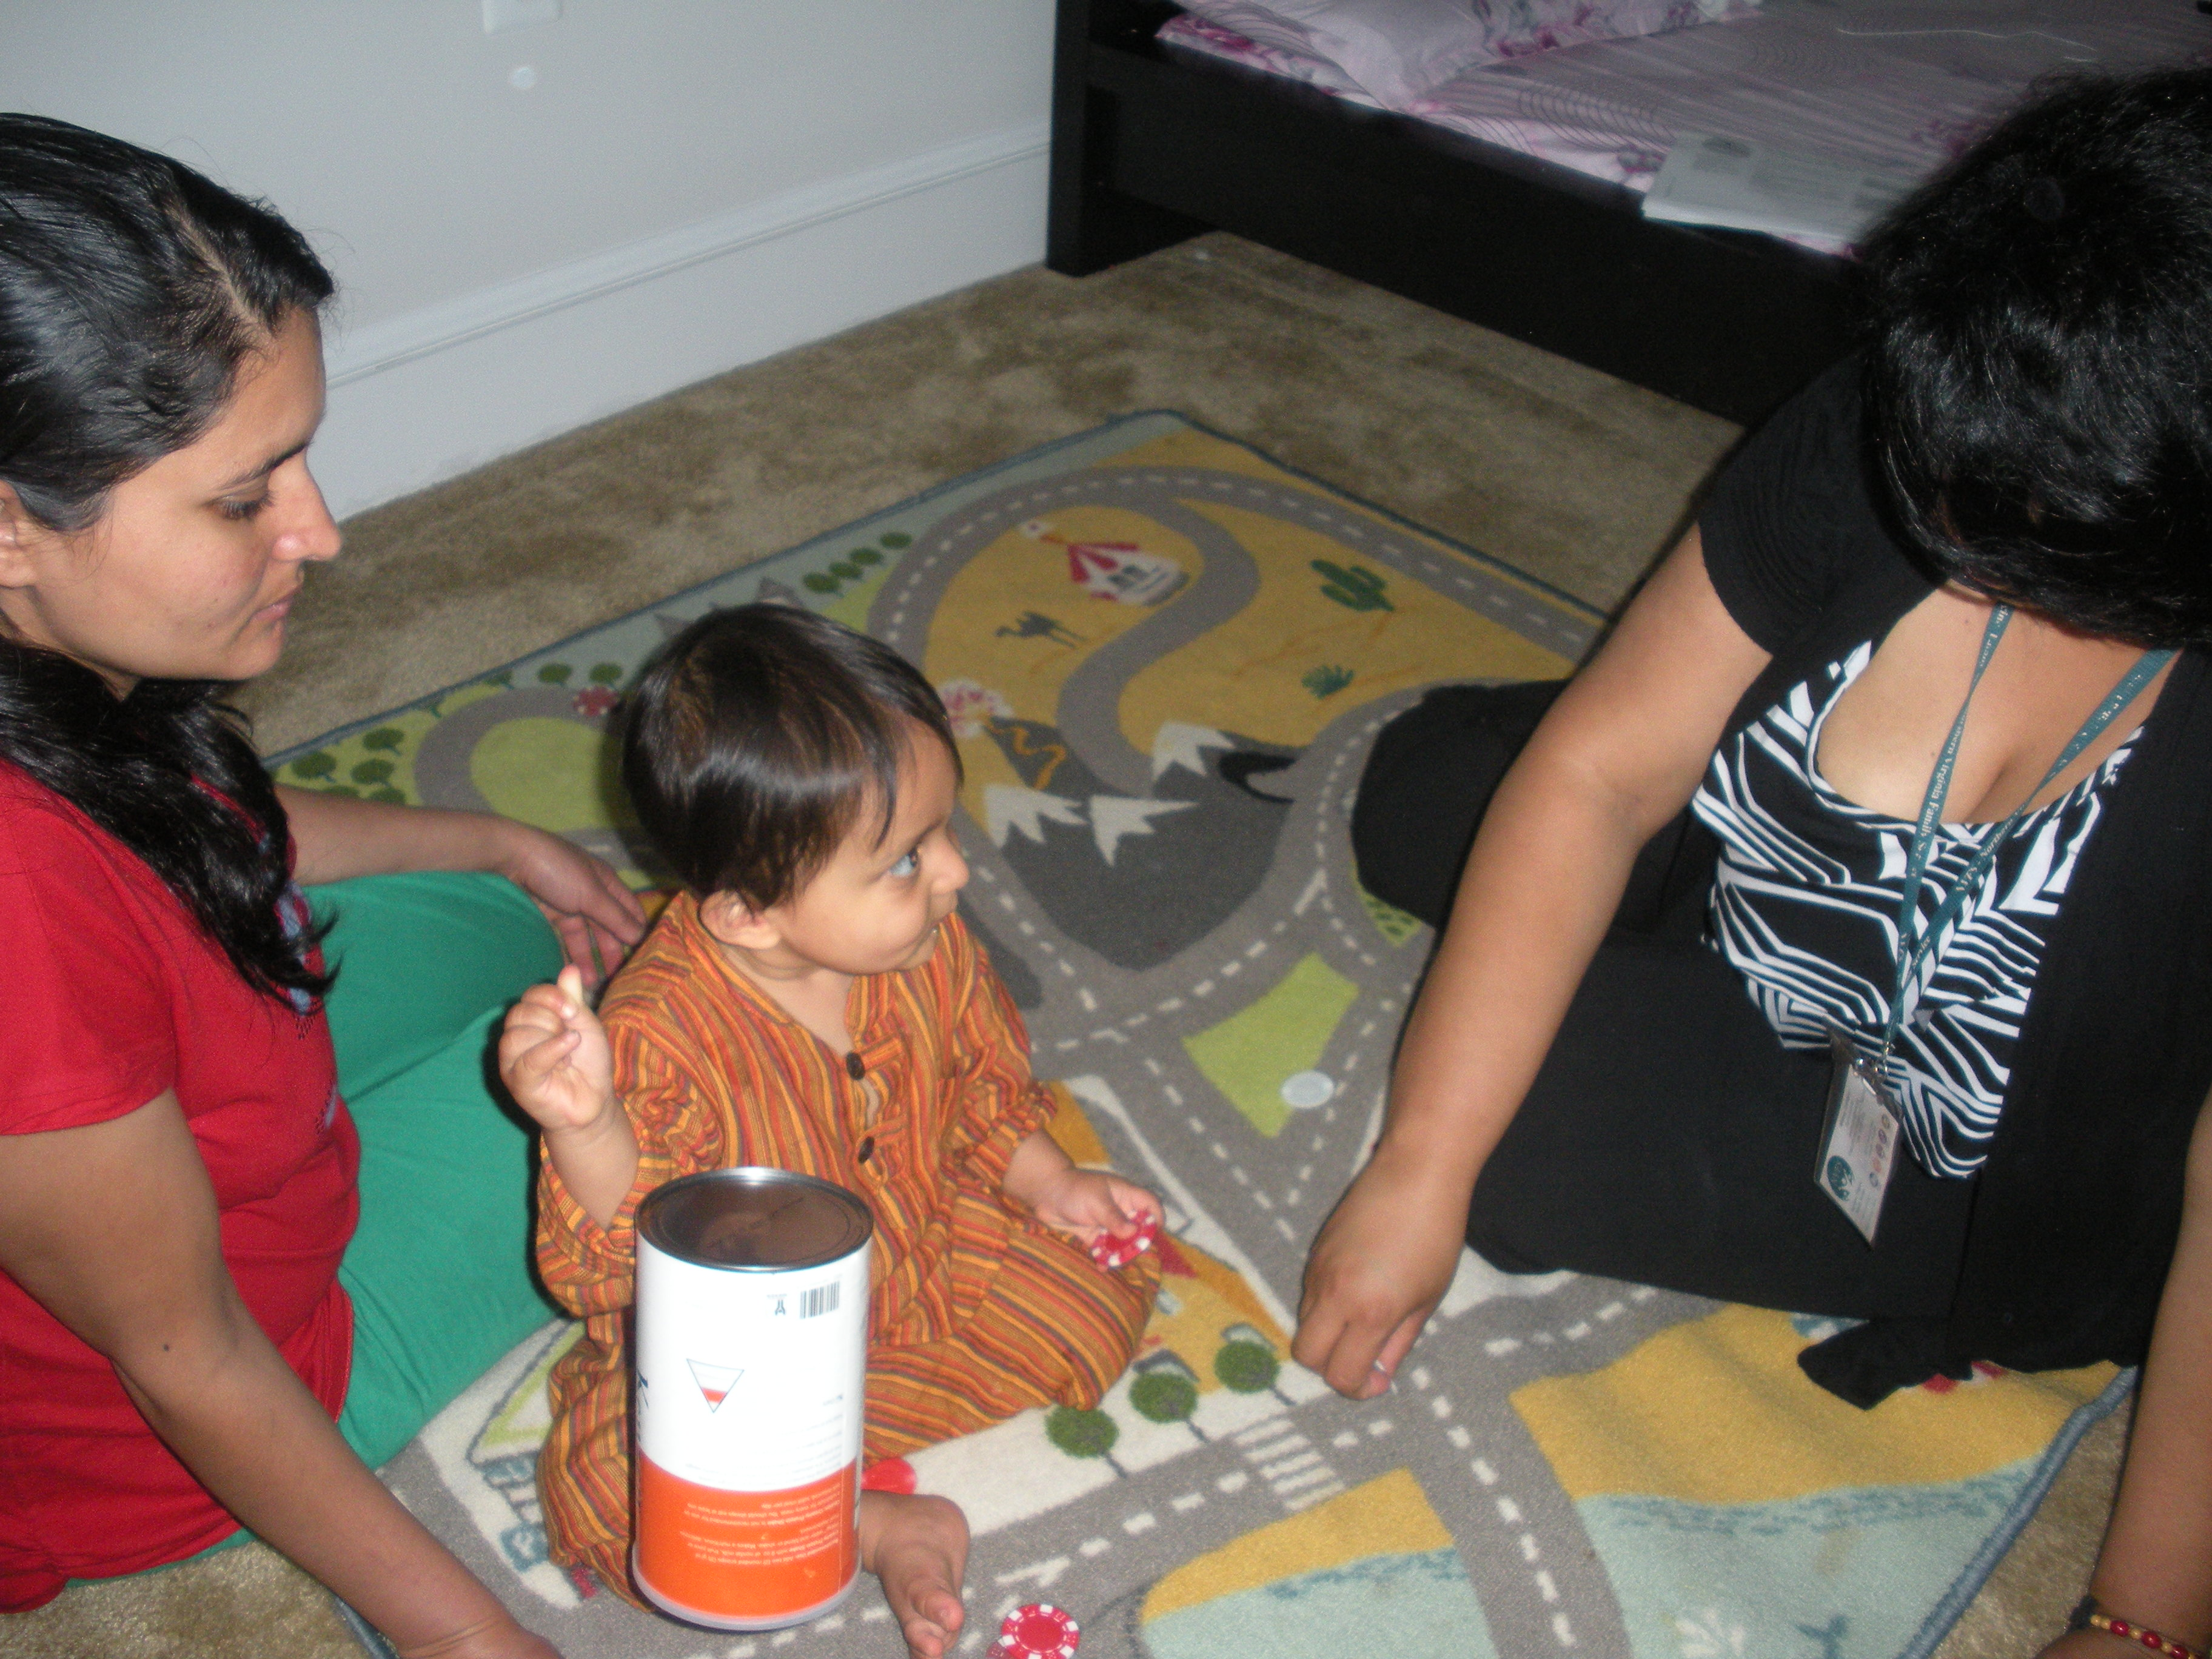 With Vijan's mother Bhawana looking on, family support worker Tina Fontaine uses play time to help develop the baby's motor skills. (VOA/J. Taboh)